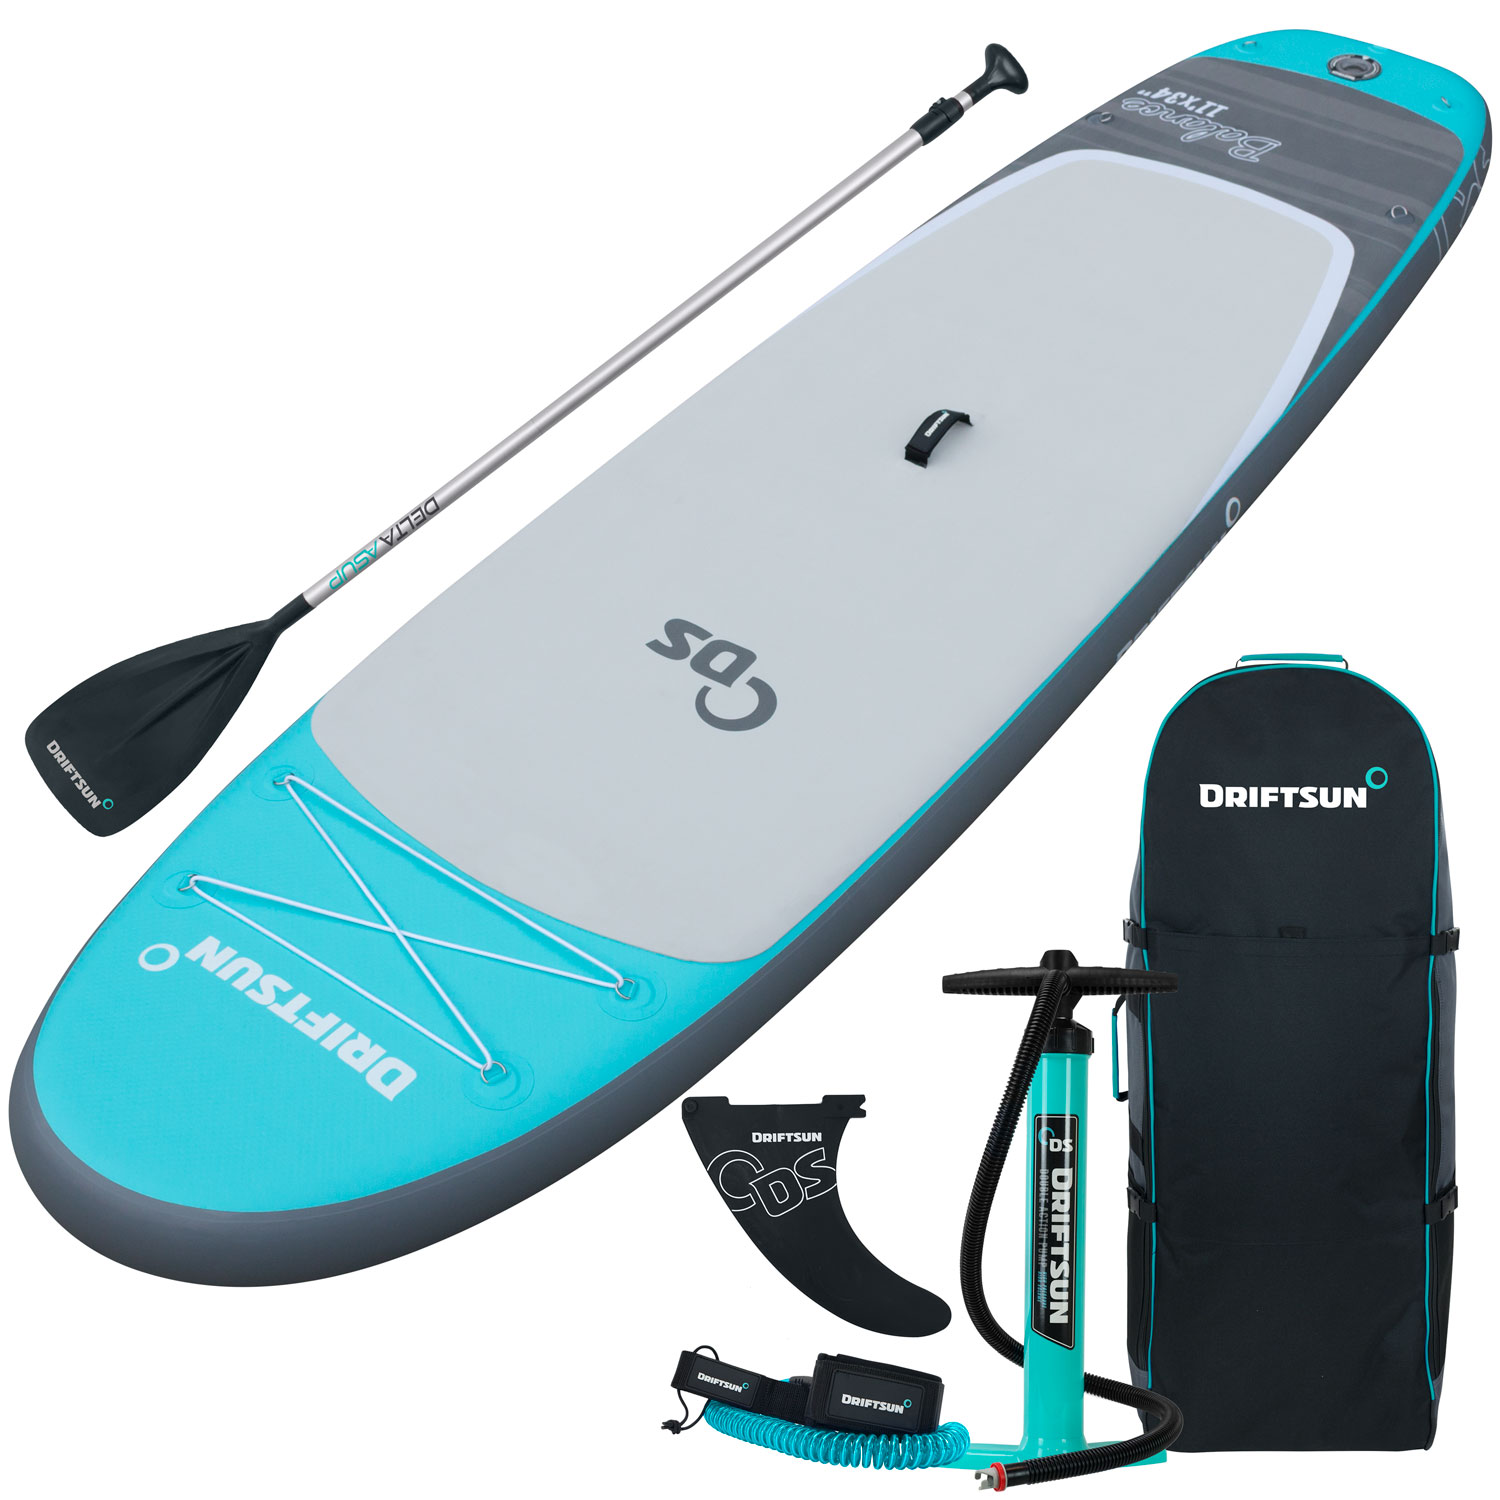 Driftsun Balance 11 Yoga SUP Inflatable Stand Up Paddle Board | Complete Package with Travel Backpack, Adjustable... by Driftsun